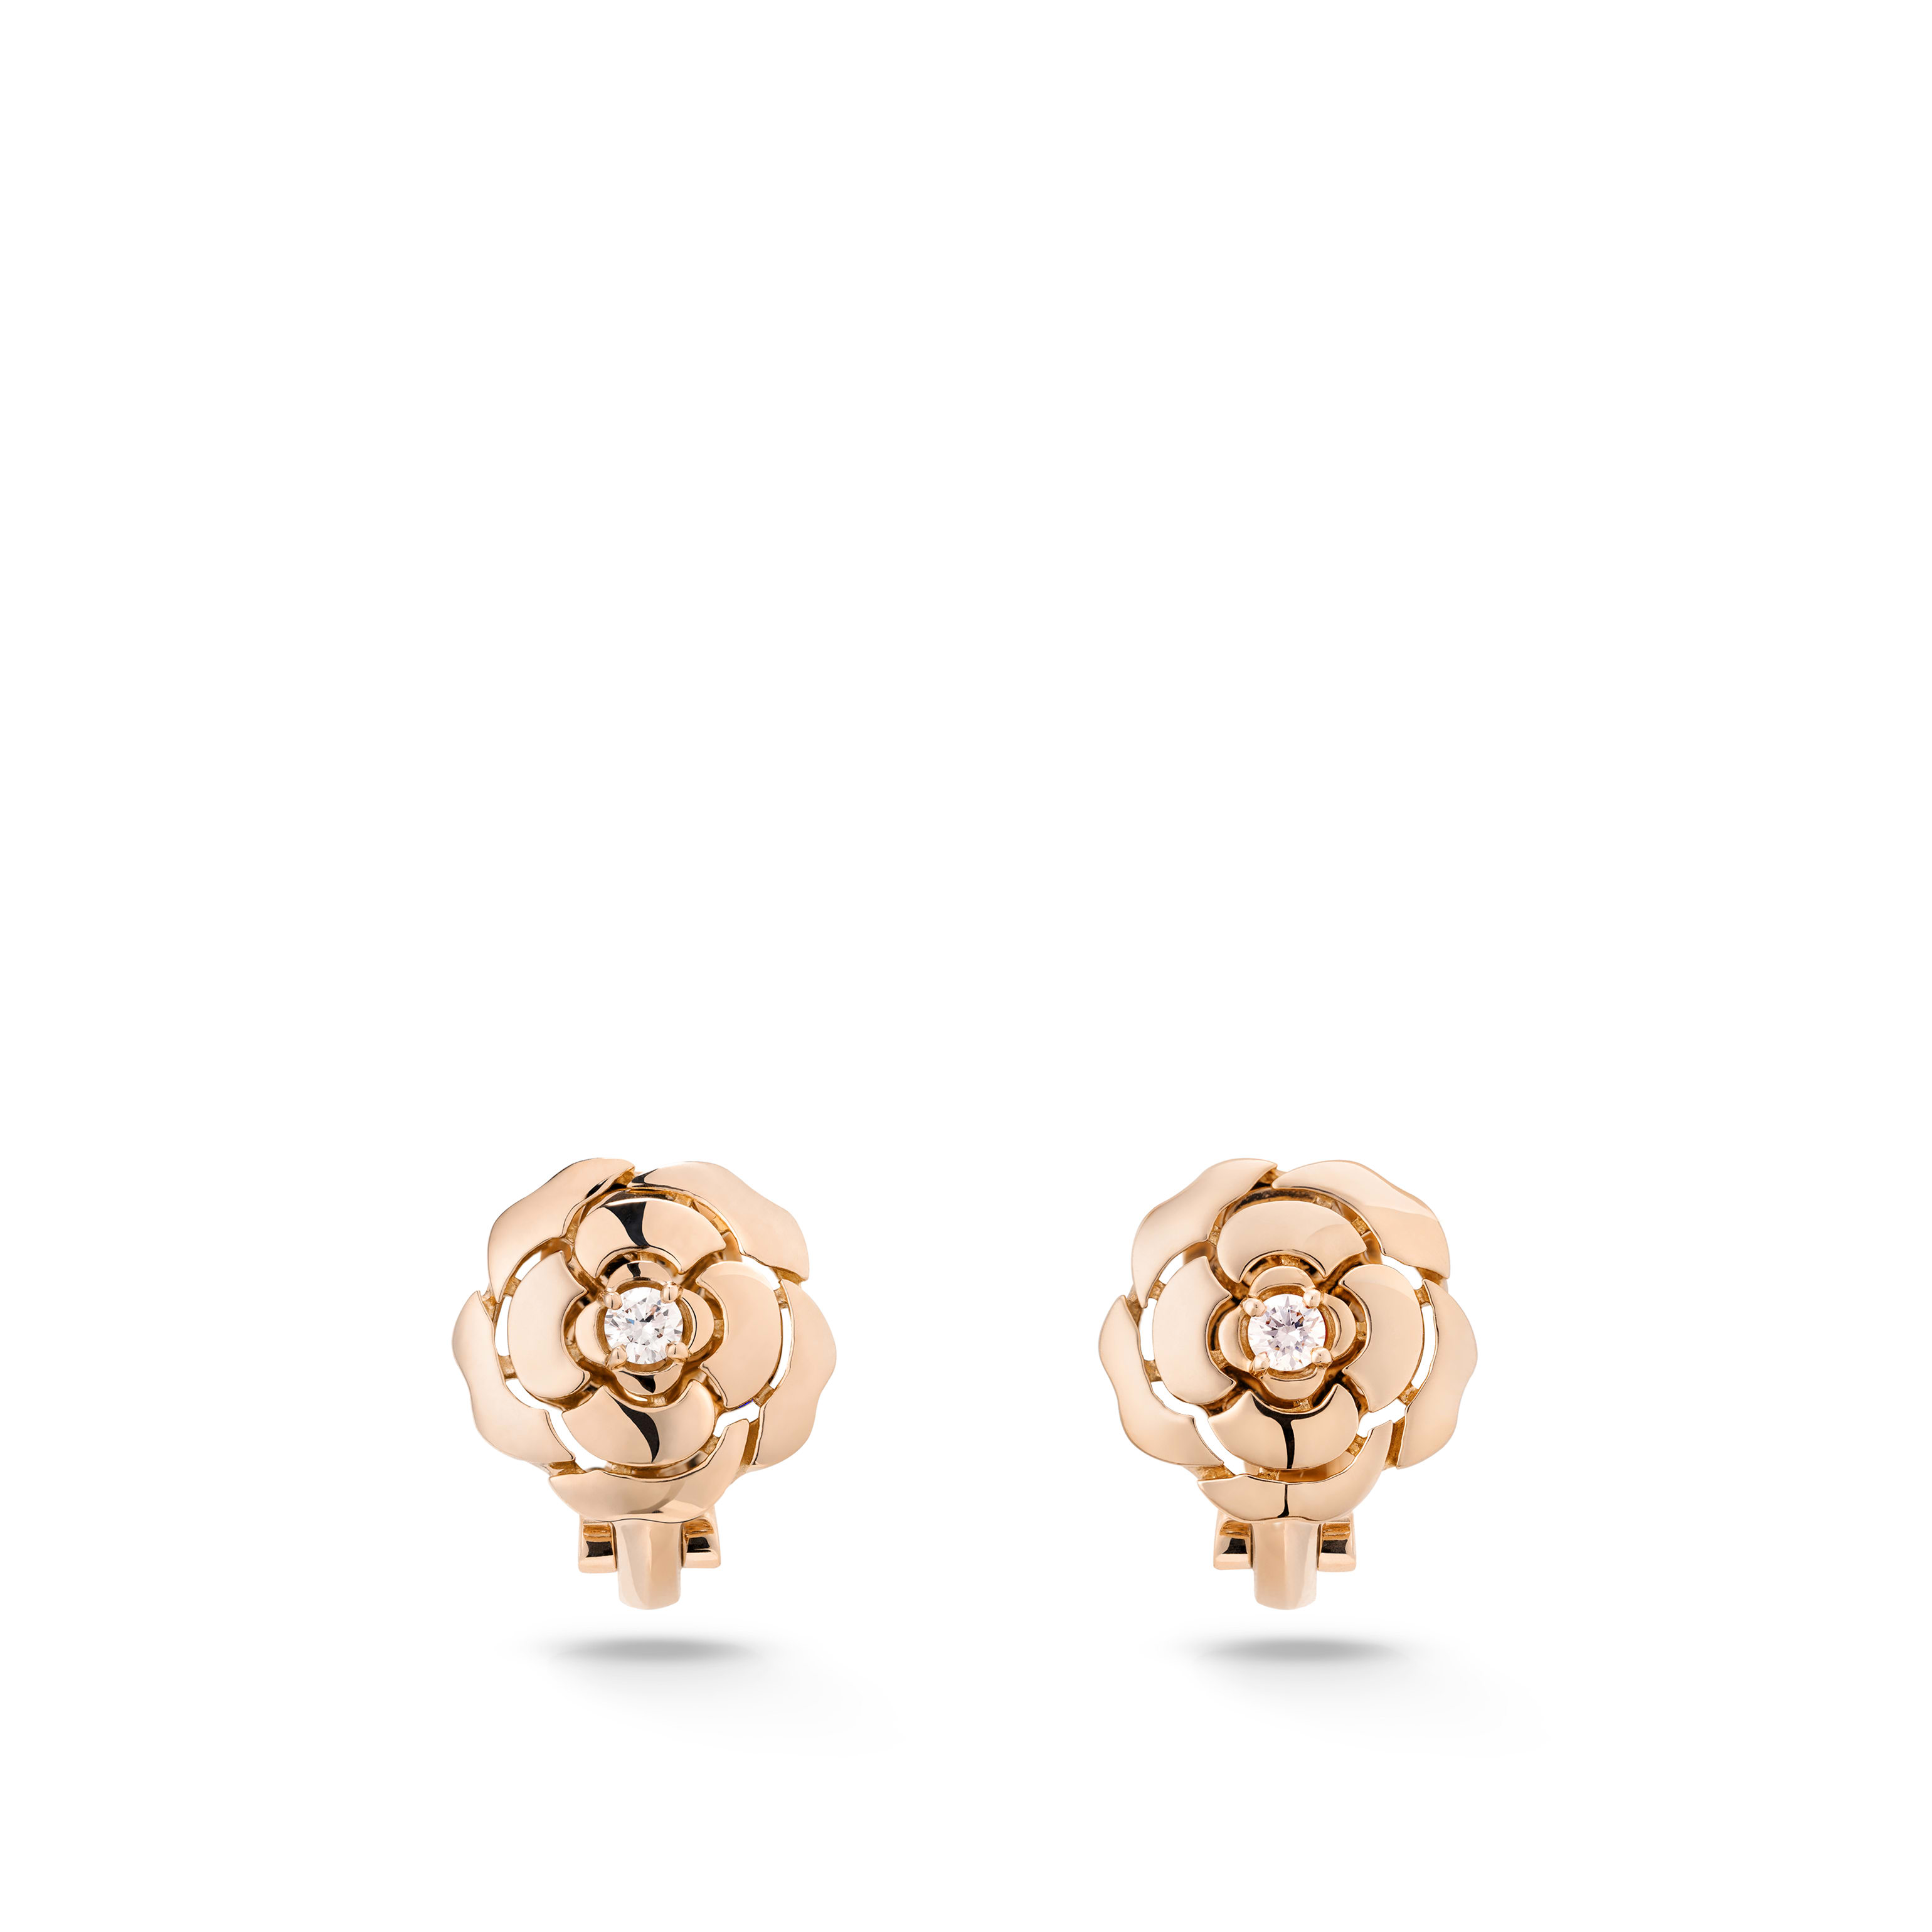 Extrait de Camélia earrings - 18K pink gold, diamonds - CHANEL - Default view - see standard sized version